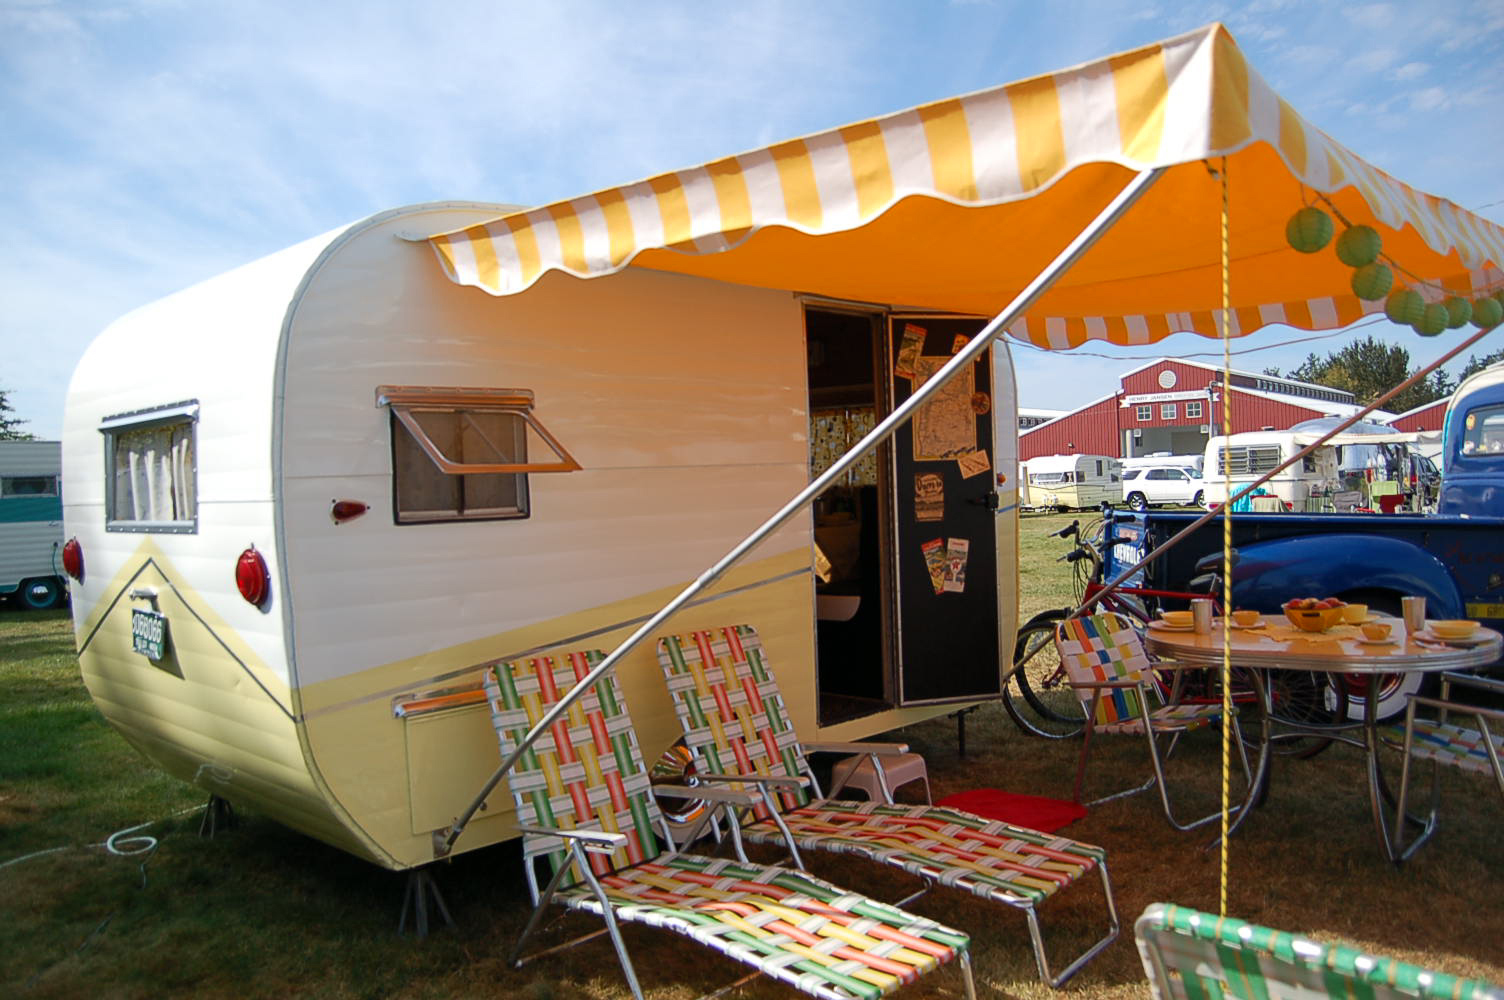 Restored 1958 Aloha Travel Trailer Painted Yellow And White With Matching  Yellow Chaise Lounge Chairs